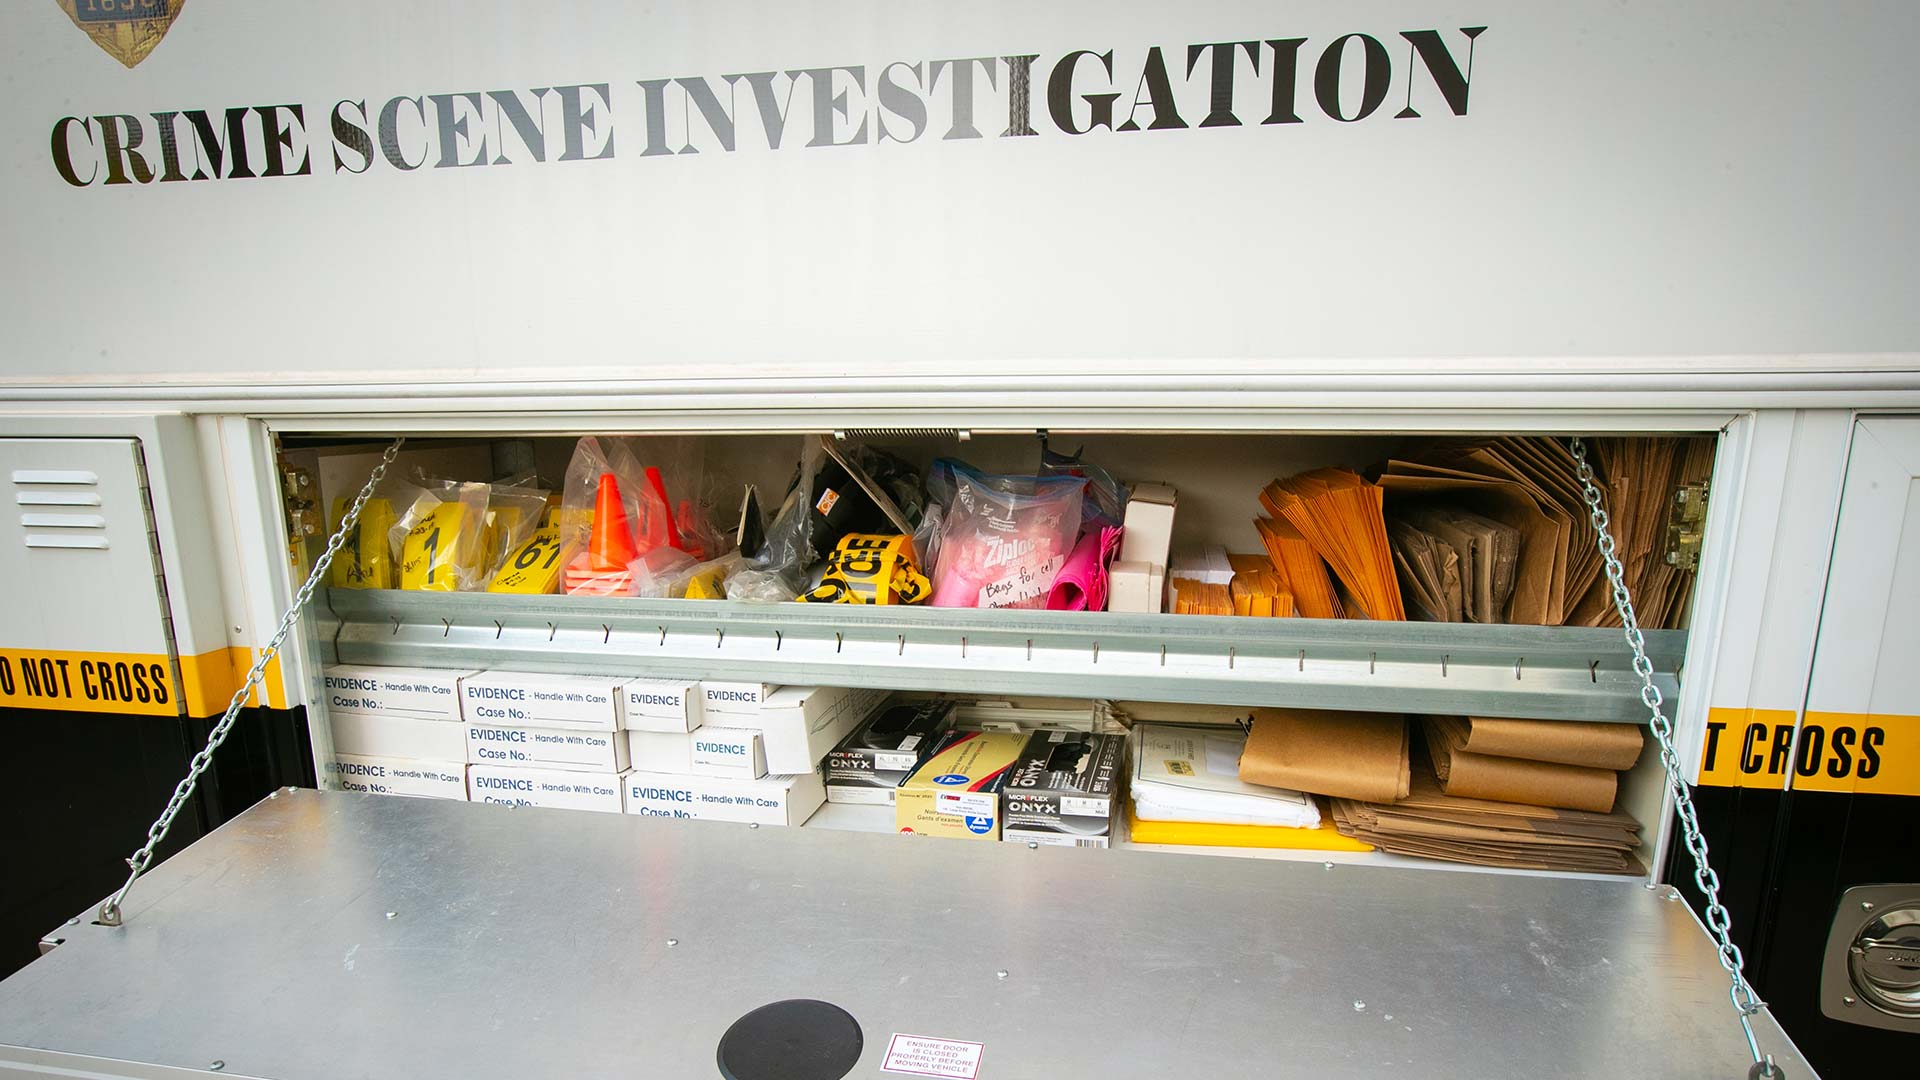 Crime scene investigation equipment.